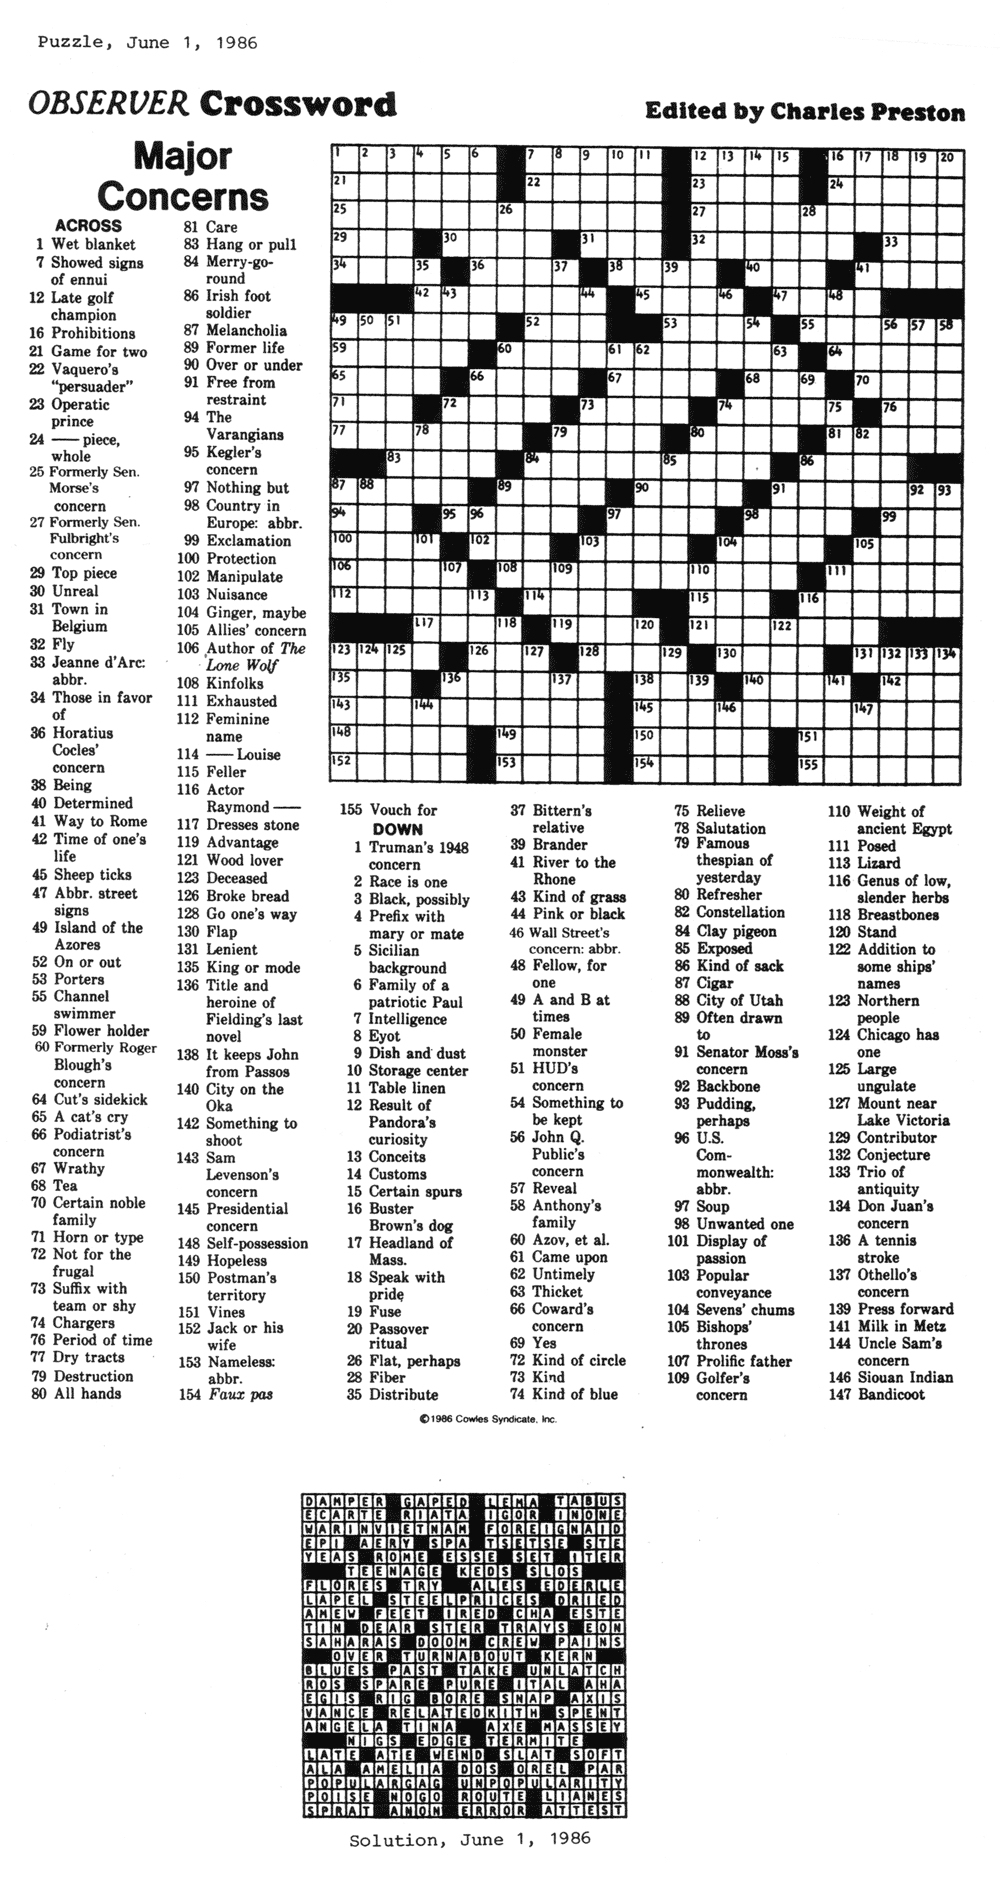 Eugene Sheffer Crossword Puzzle Printable - Printable 360 Degree - Printable Crossword Puzzles By Eugene Sheffer